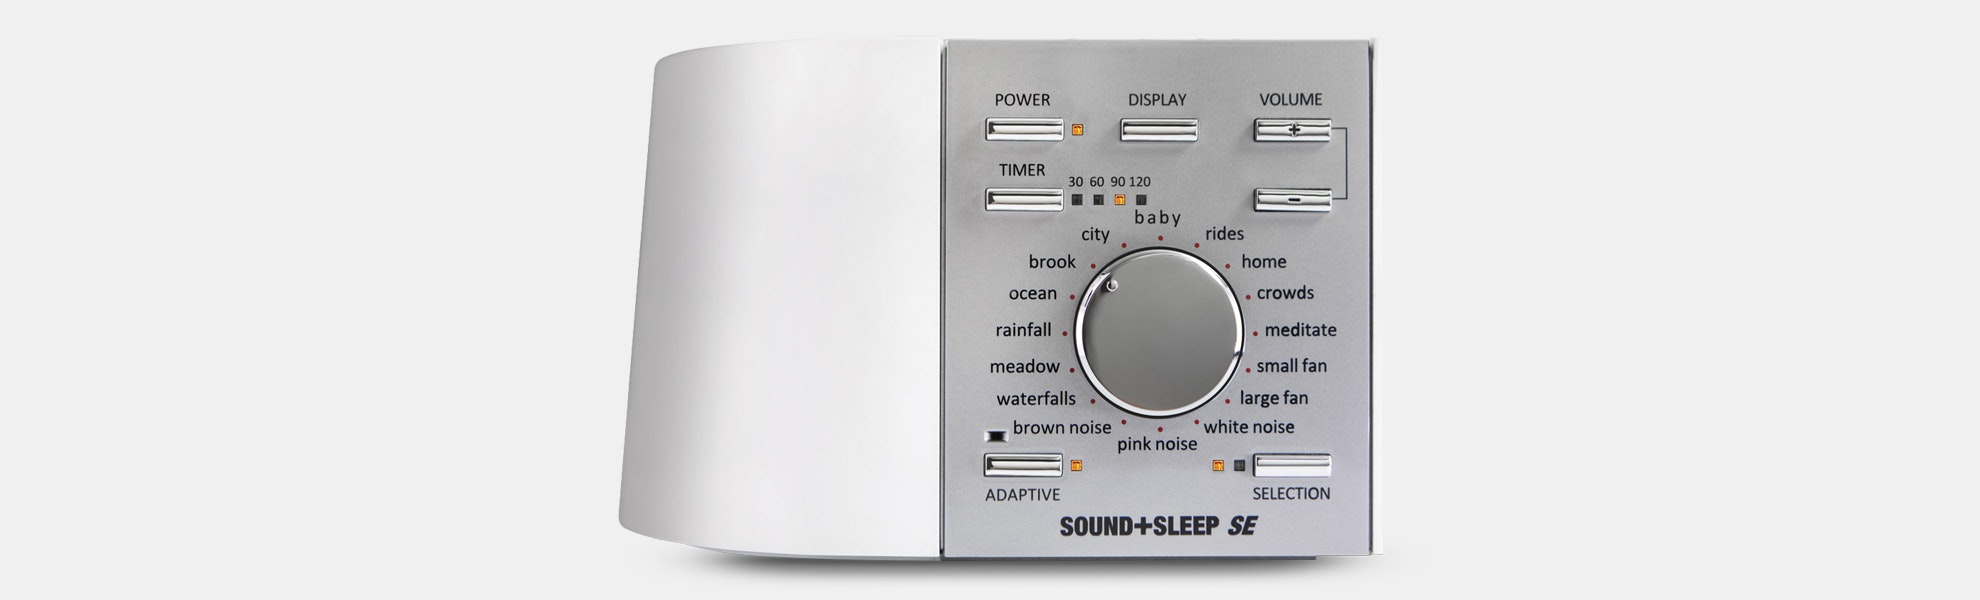 Sound+Sleep SE Hi-Fi Sleep Sound Machine